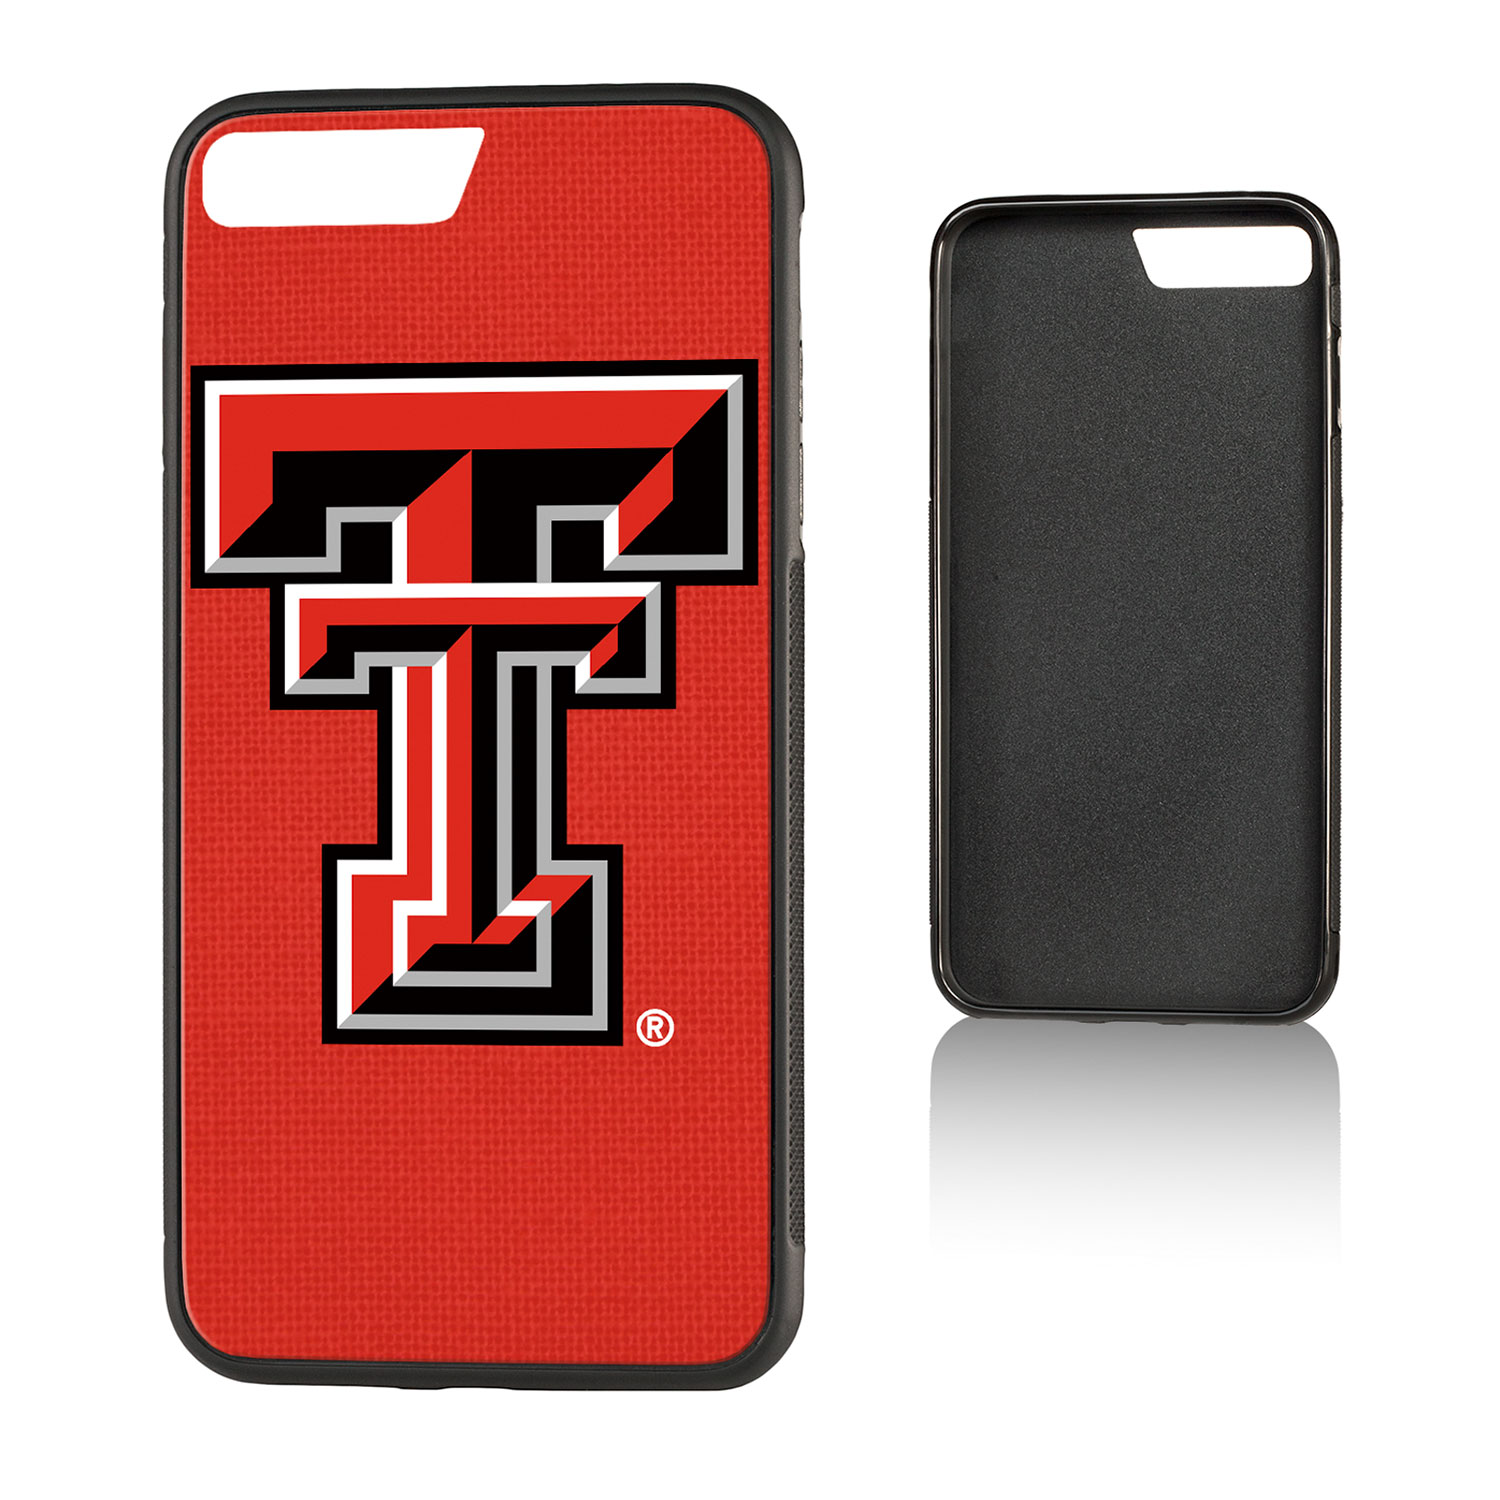 TT Texas Tech Red Raiders Solid Bump Case for iPhone 8 Plus / 7 Plus